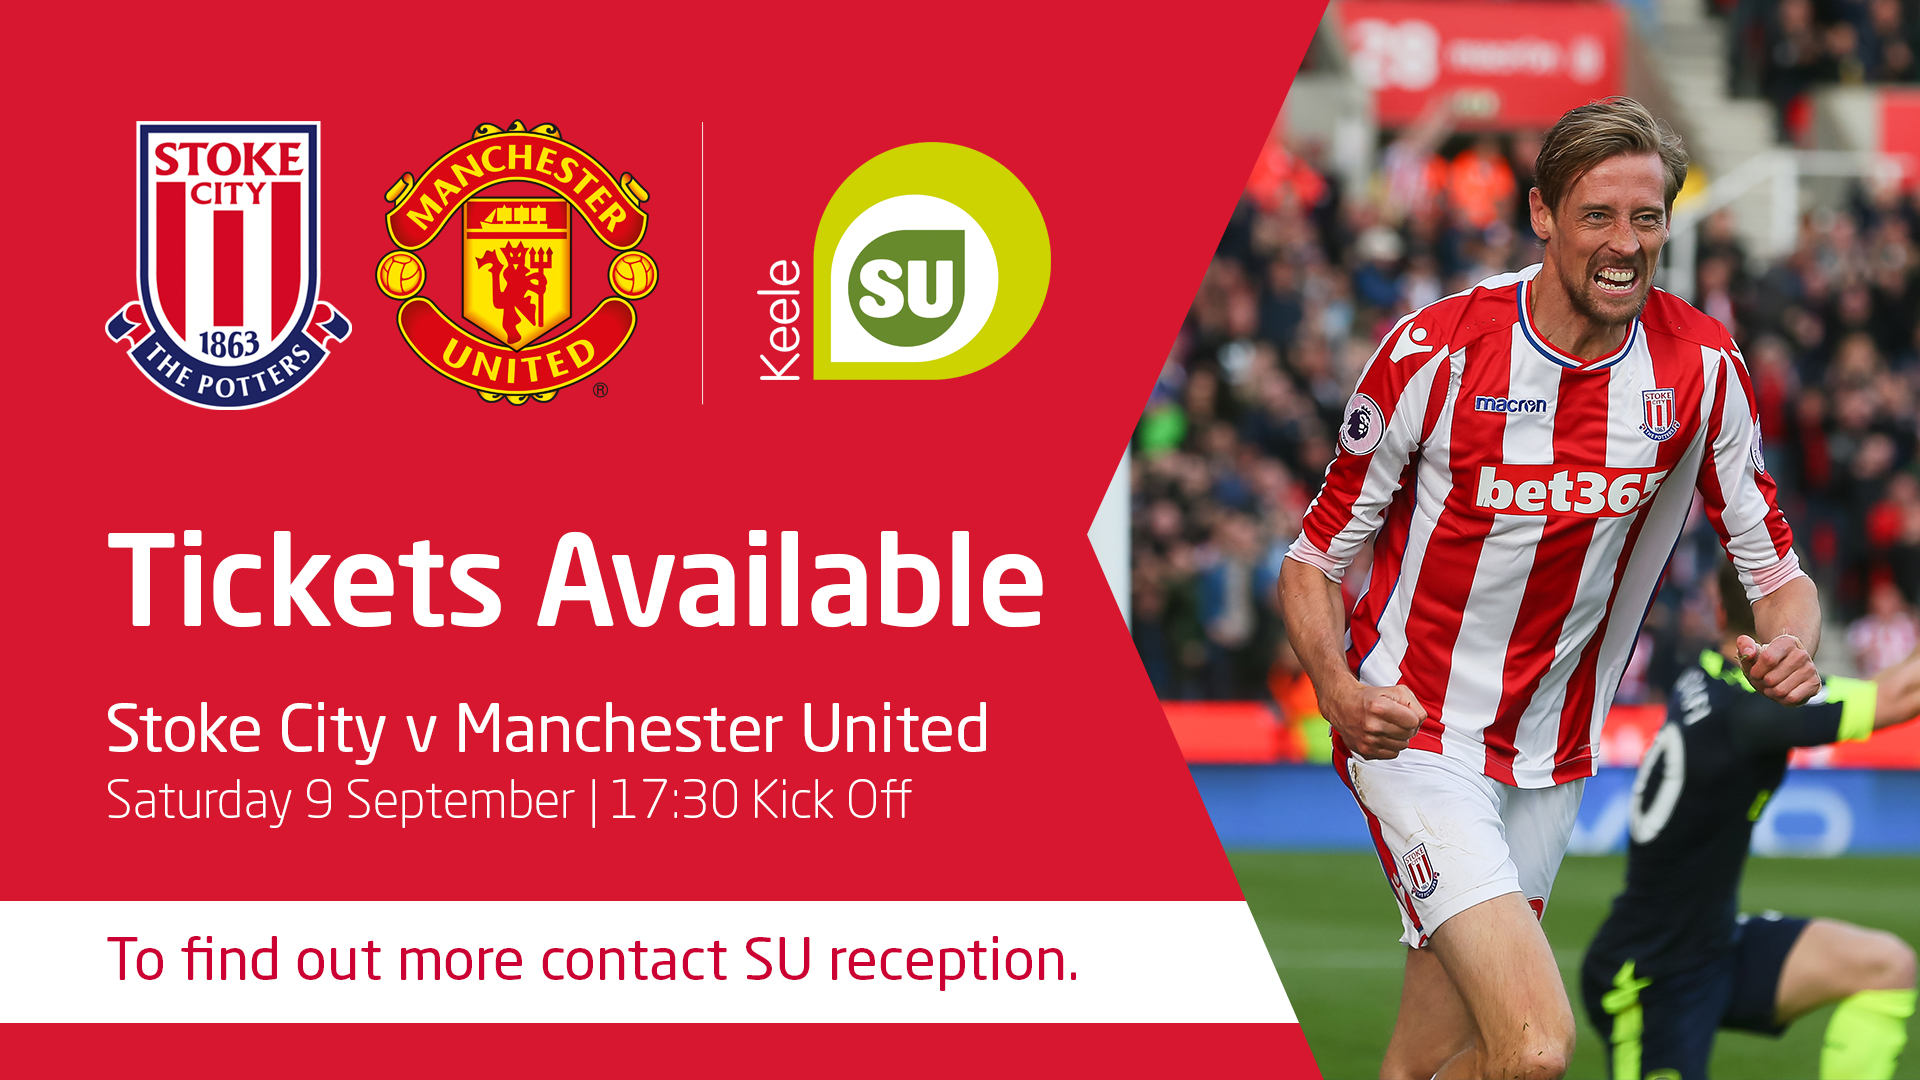 Stoke City/Manchester Tickets Available